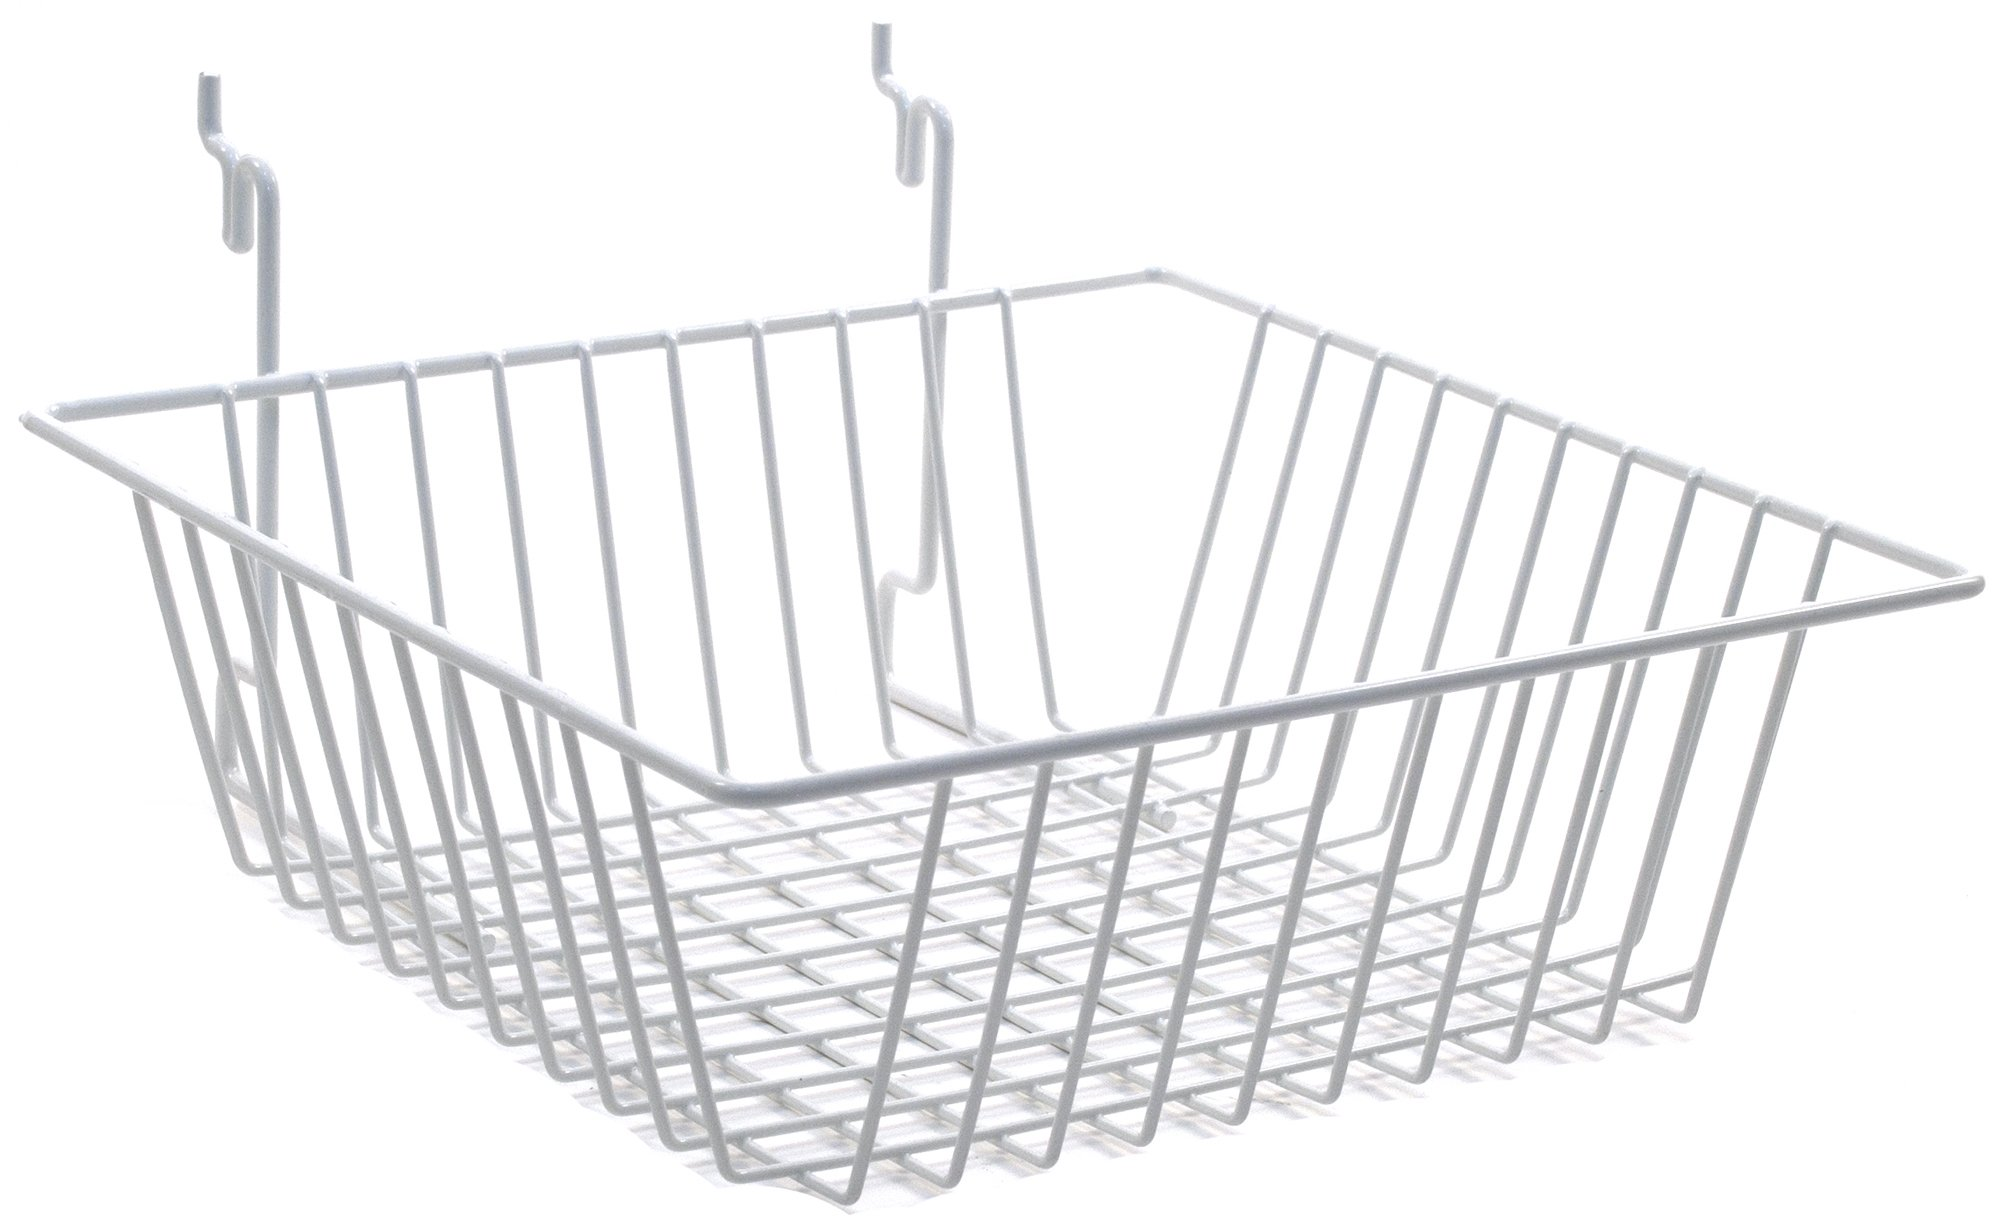 KC Store Fixtures A03006 Basket Fits Slatwall, Grid, Pegboard, 12'' W x 12'' D x 4'' H, White (Pack of 10)